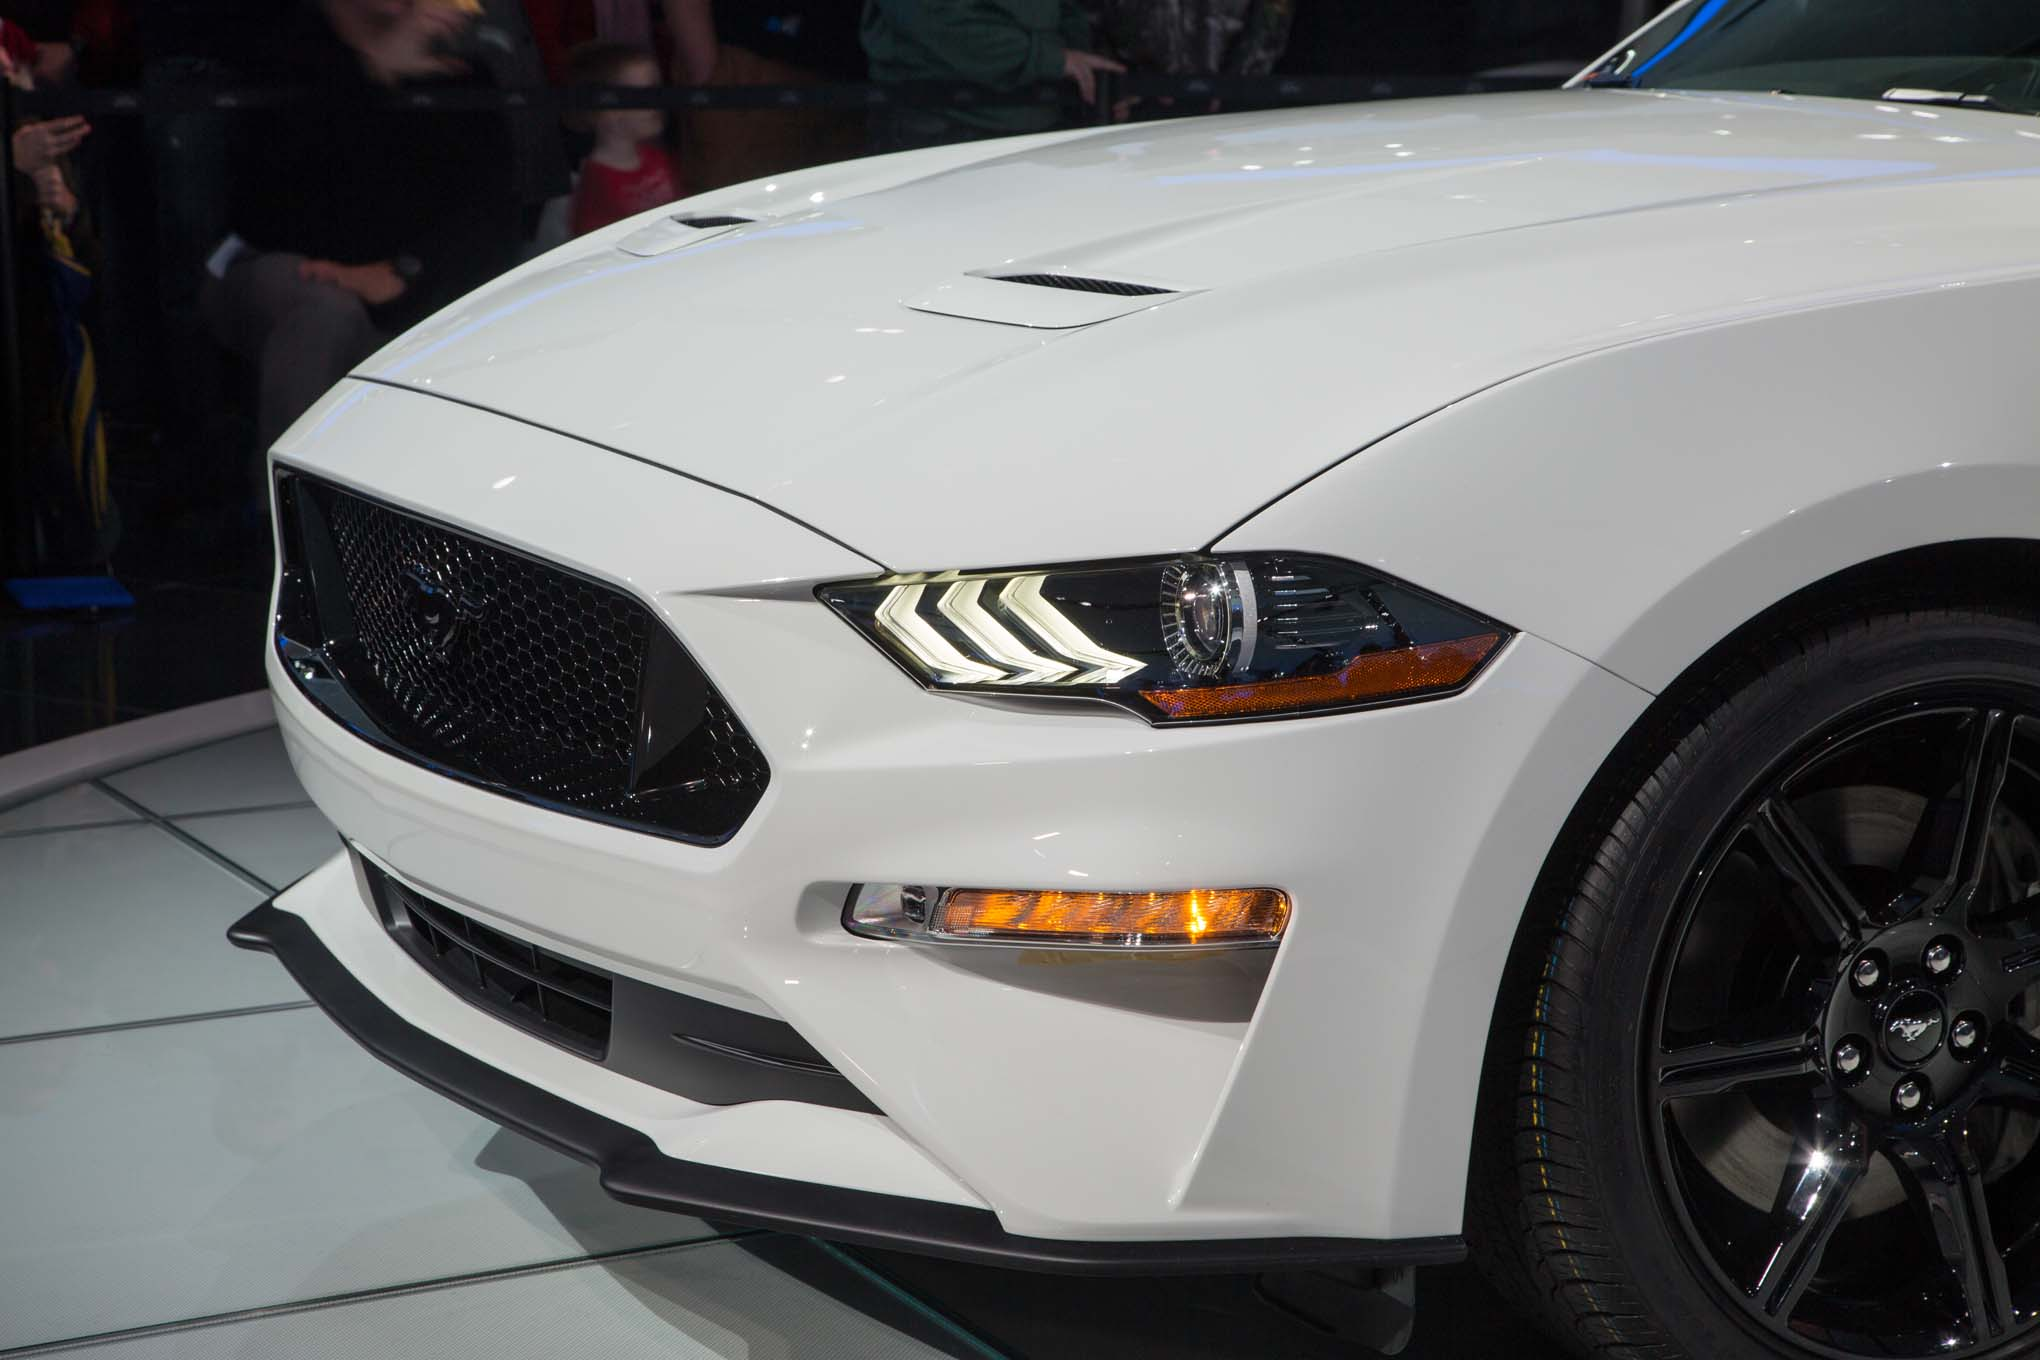 2018 Ford Mustang GT front quarter panel